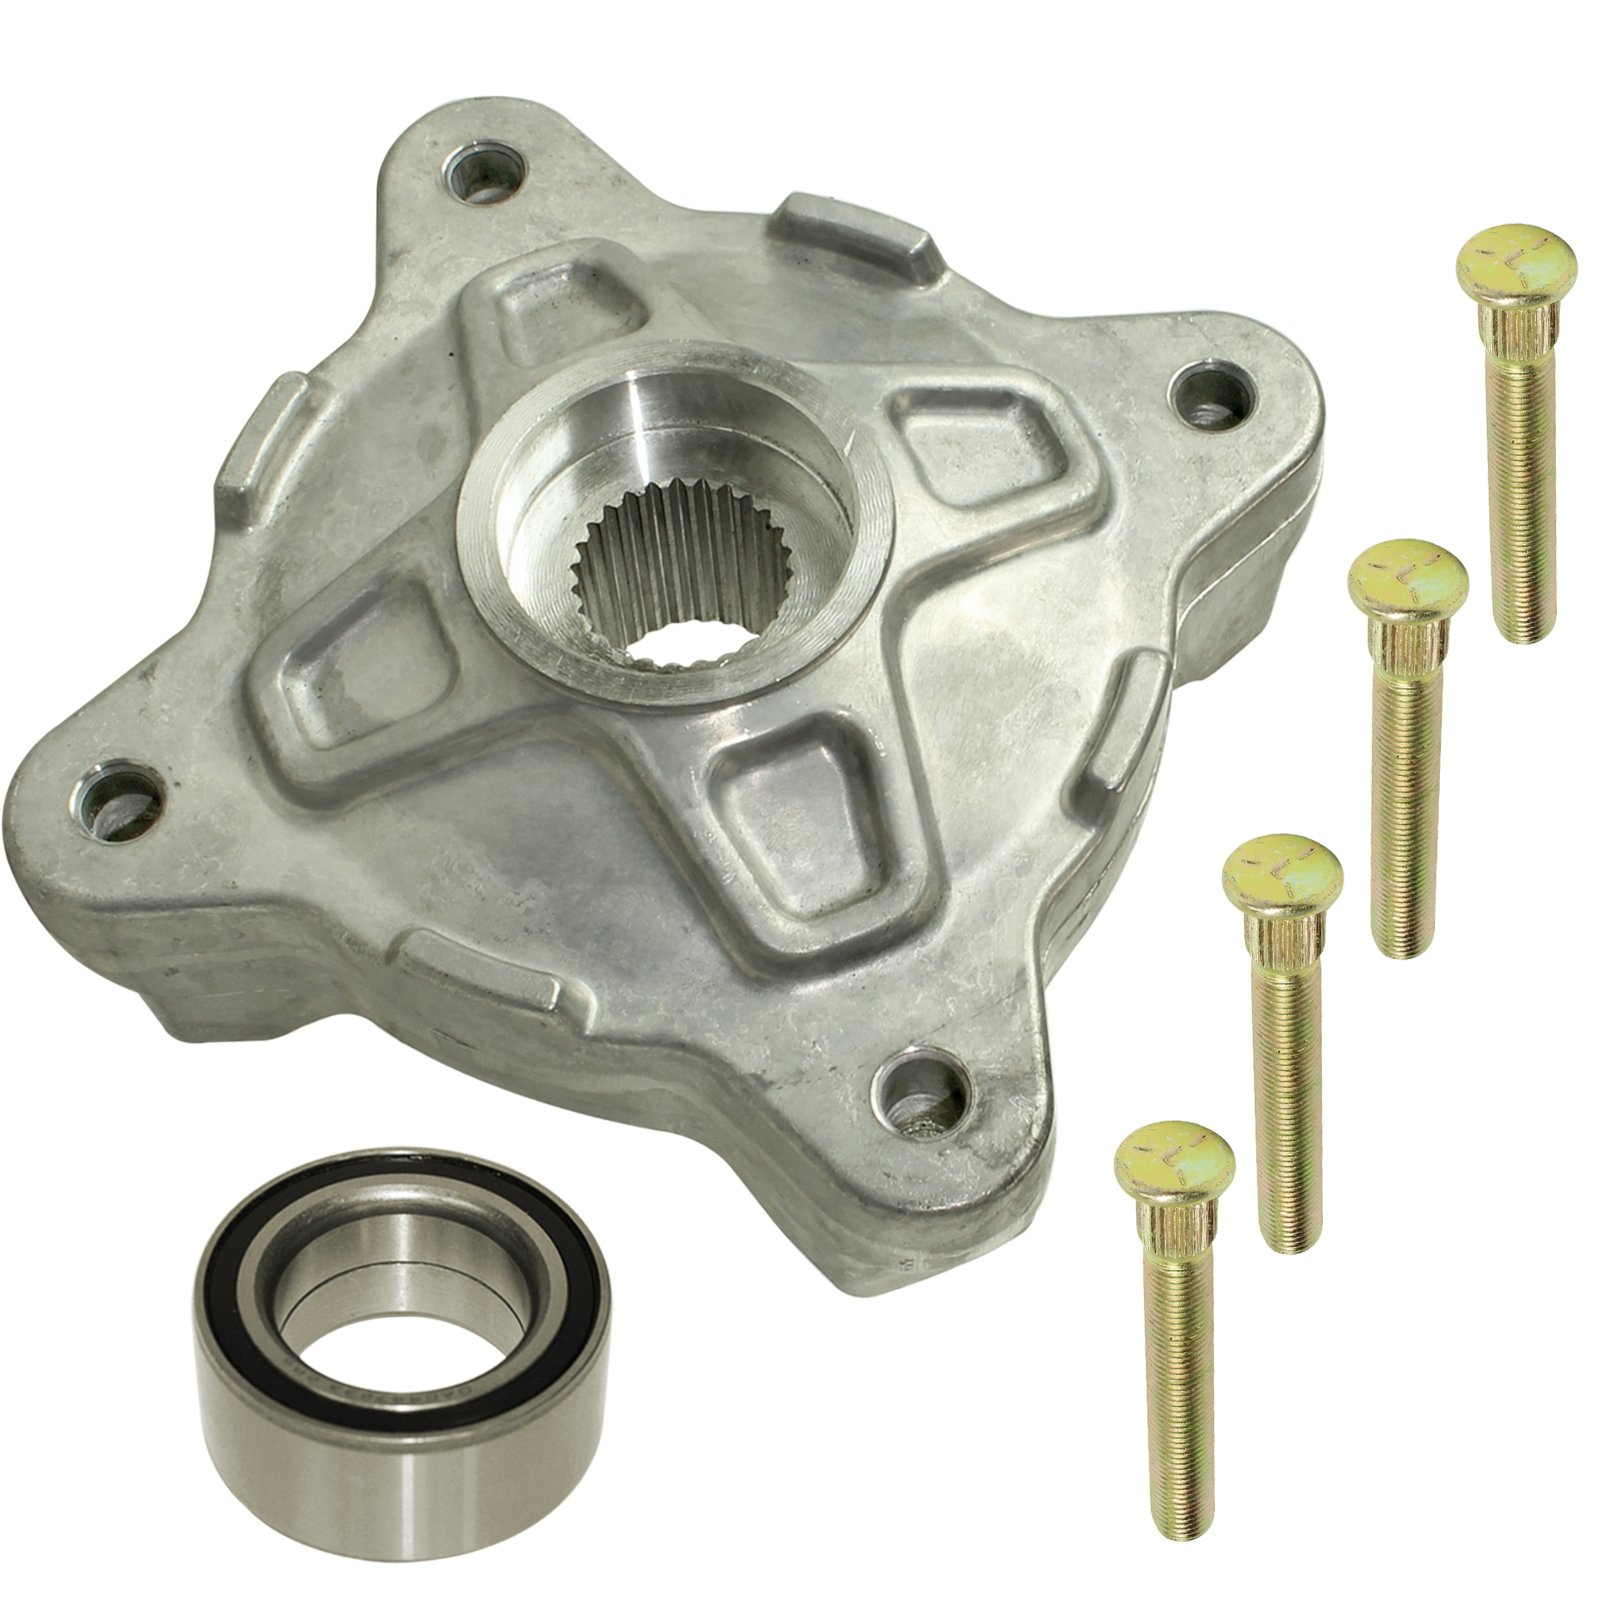 CALTRIC FRONT WHEEL HUB w/STUDS and BALL BEARING Fits POLARIS RZR S 800 EFI 2009-2014